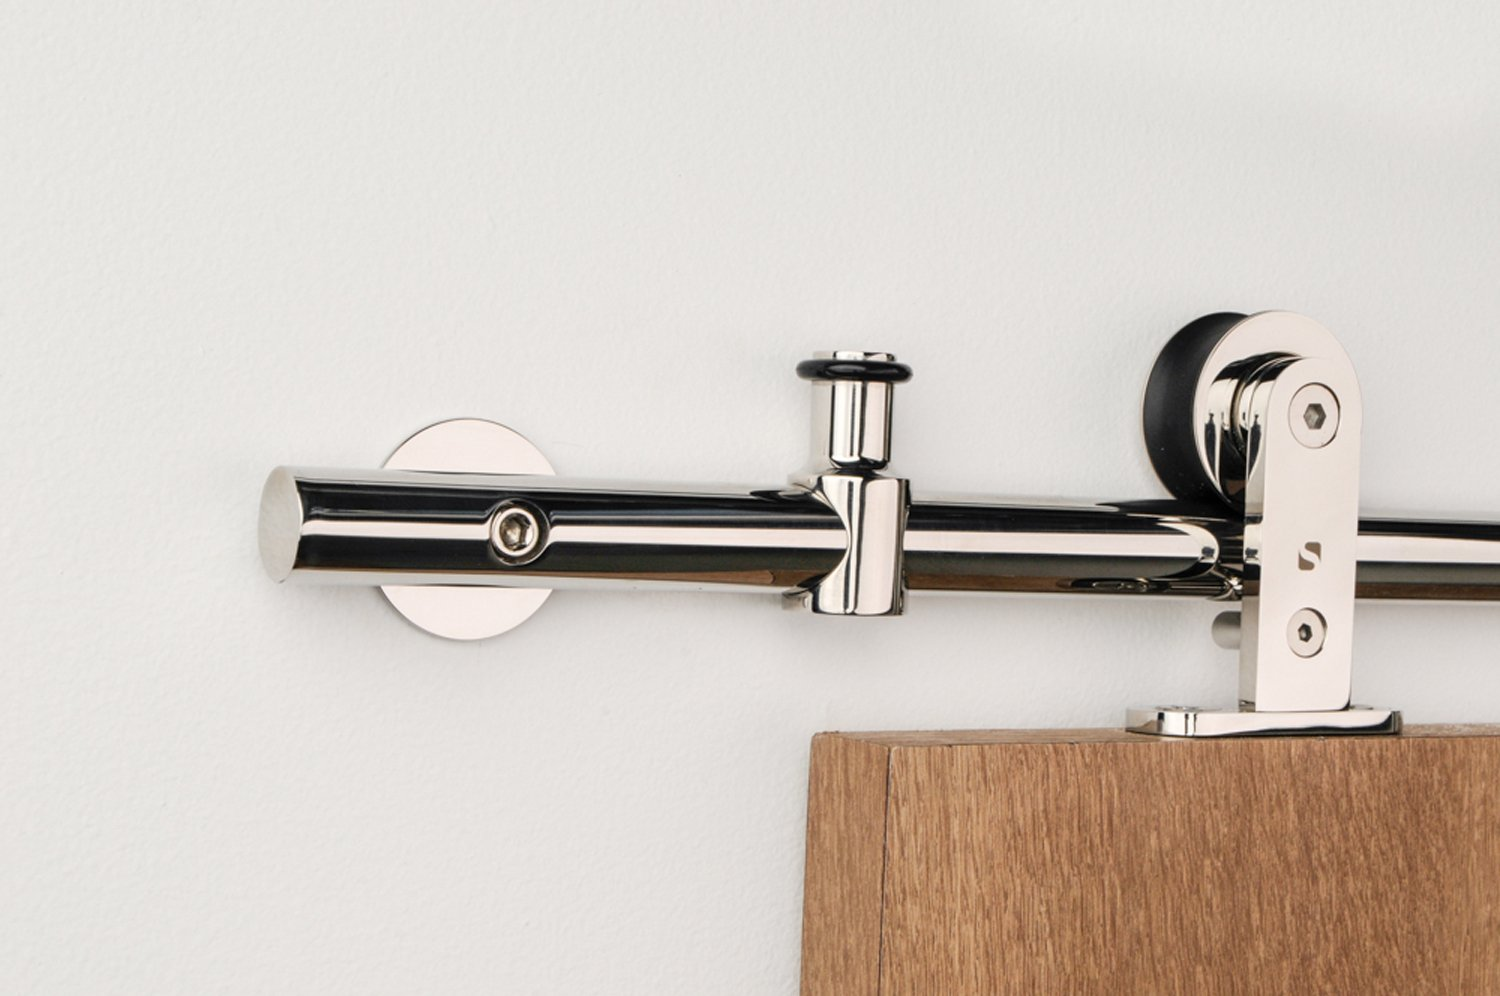 Contemporary Sliding Barn Door Hardware For Wood / Polished Chrome Finish / Stainless Steel - Legacy WT Series (6' Rail Length)